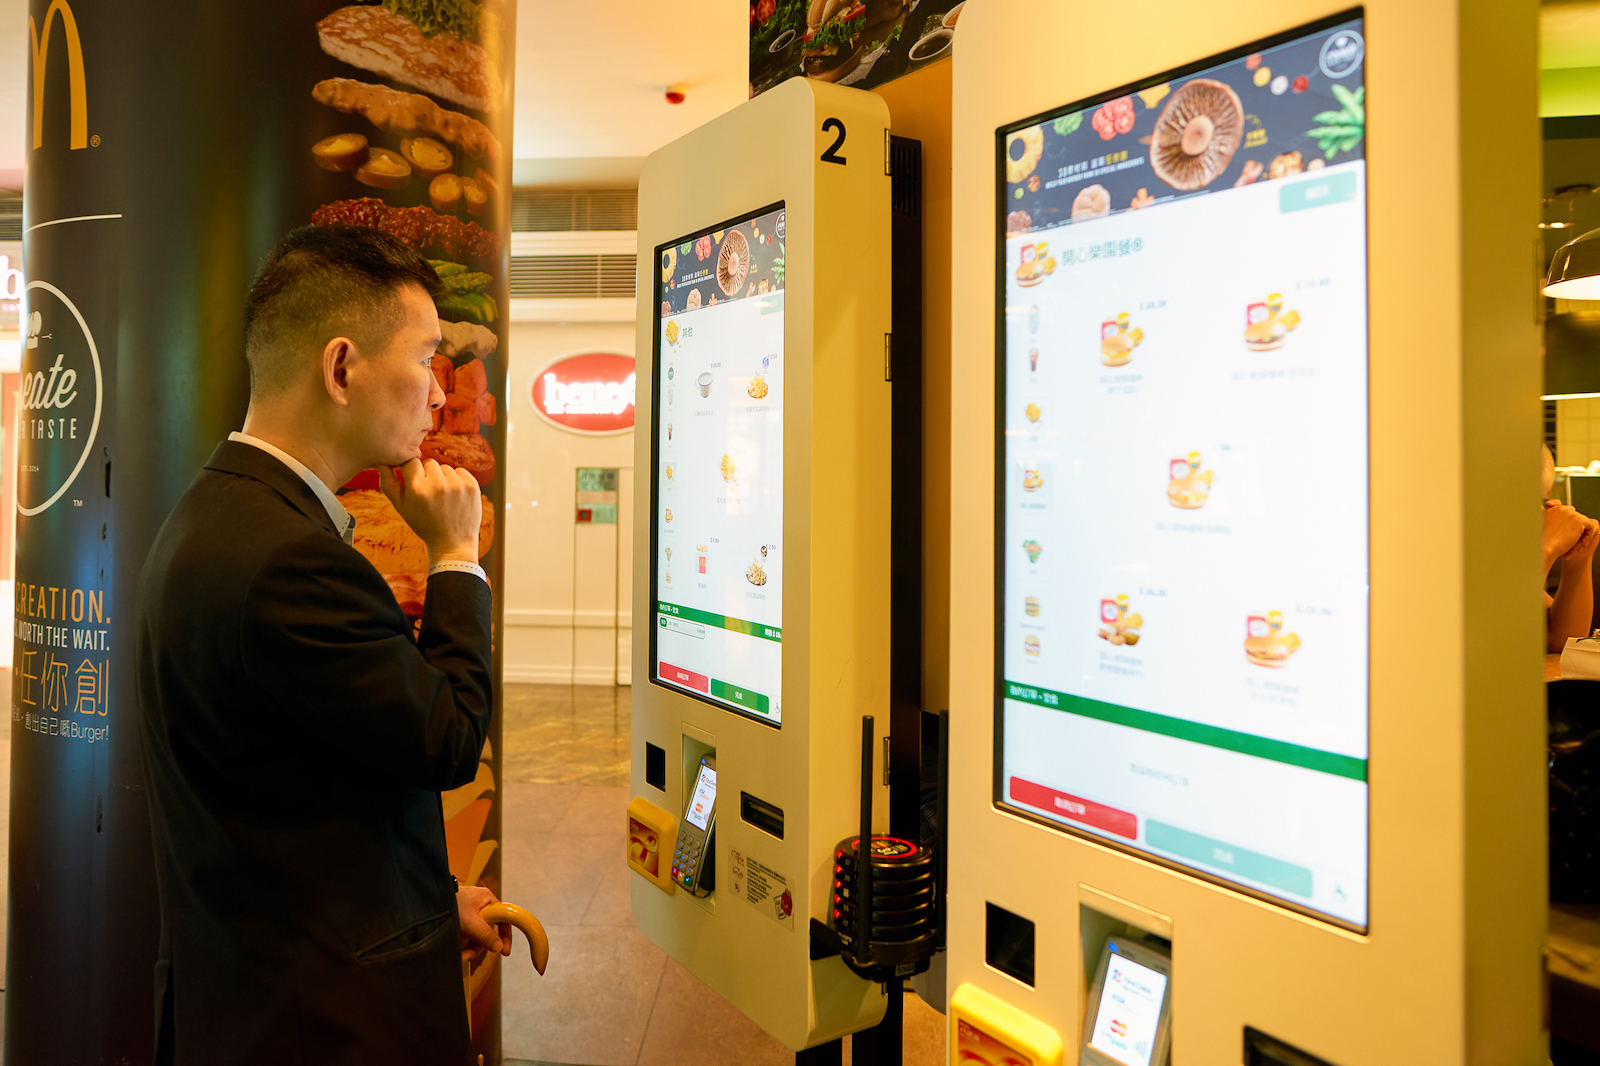 The empathy gap in self-service kiosk experiences